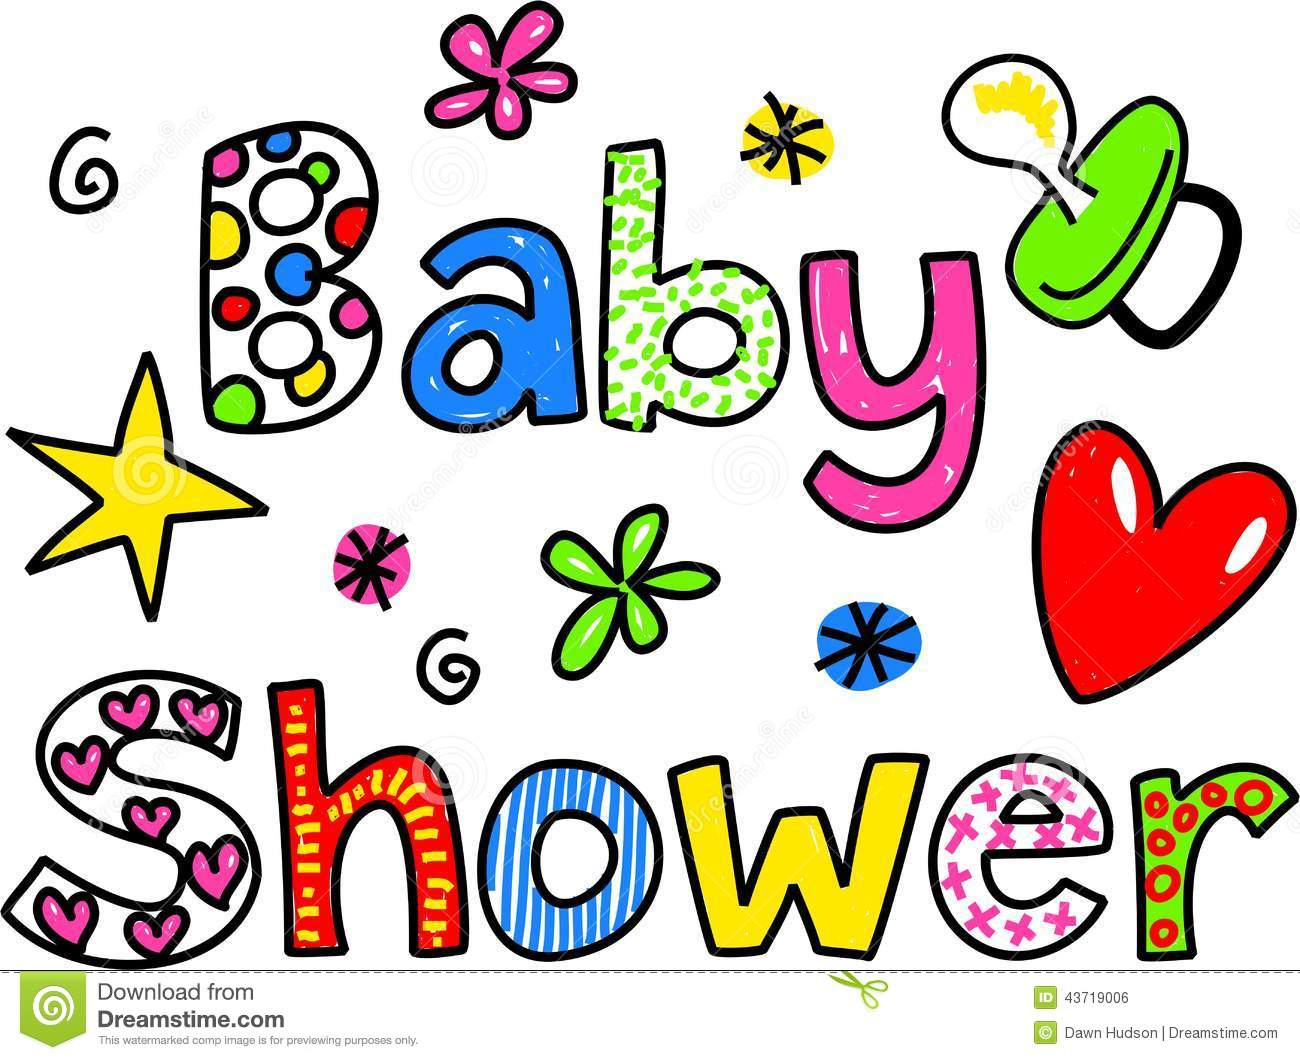 funny baby shower clipart clipart suggest free baby shower clip art backgrounds free baby shower clipart for invitations